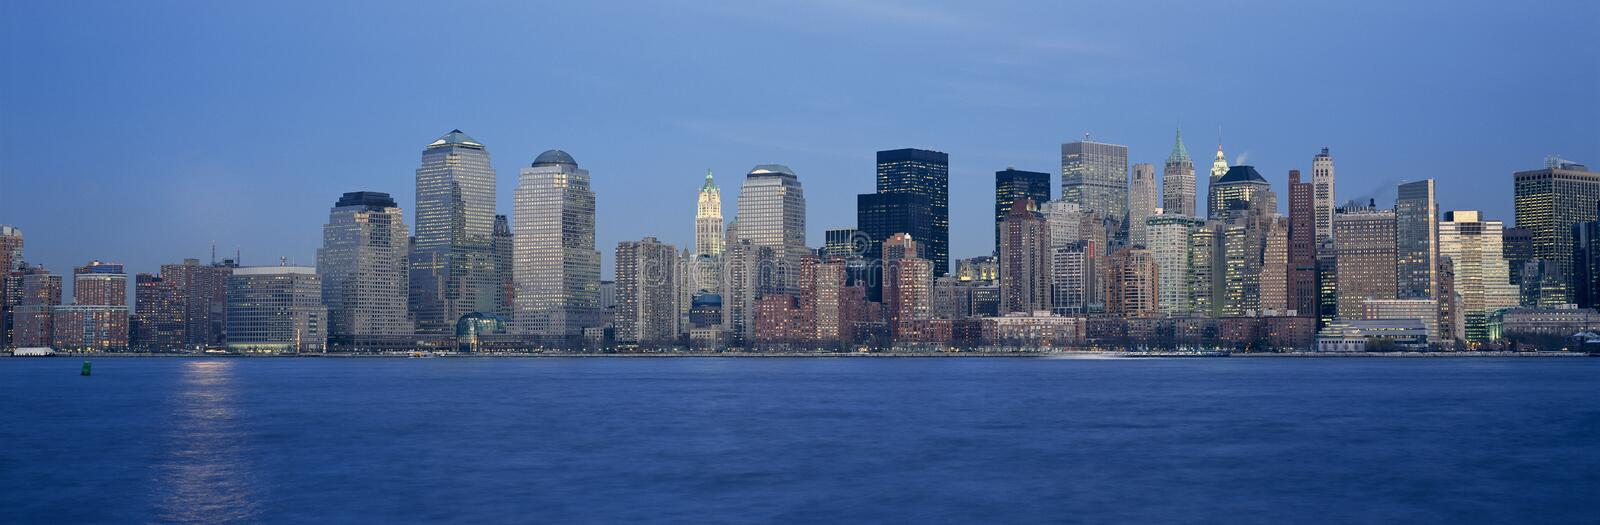 Panoramic sunset view of Lower Manhattan skyline, NY where World Trade Towers were located stock photography